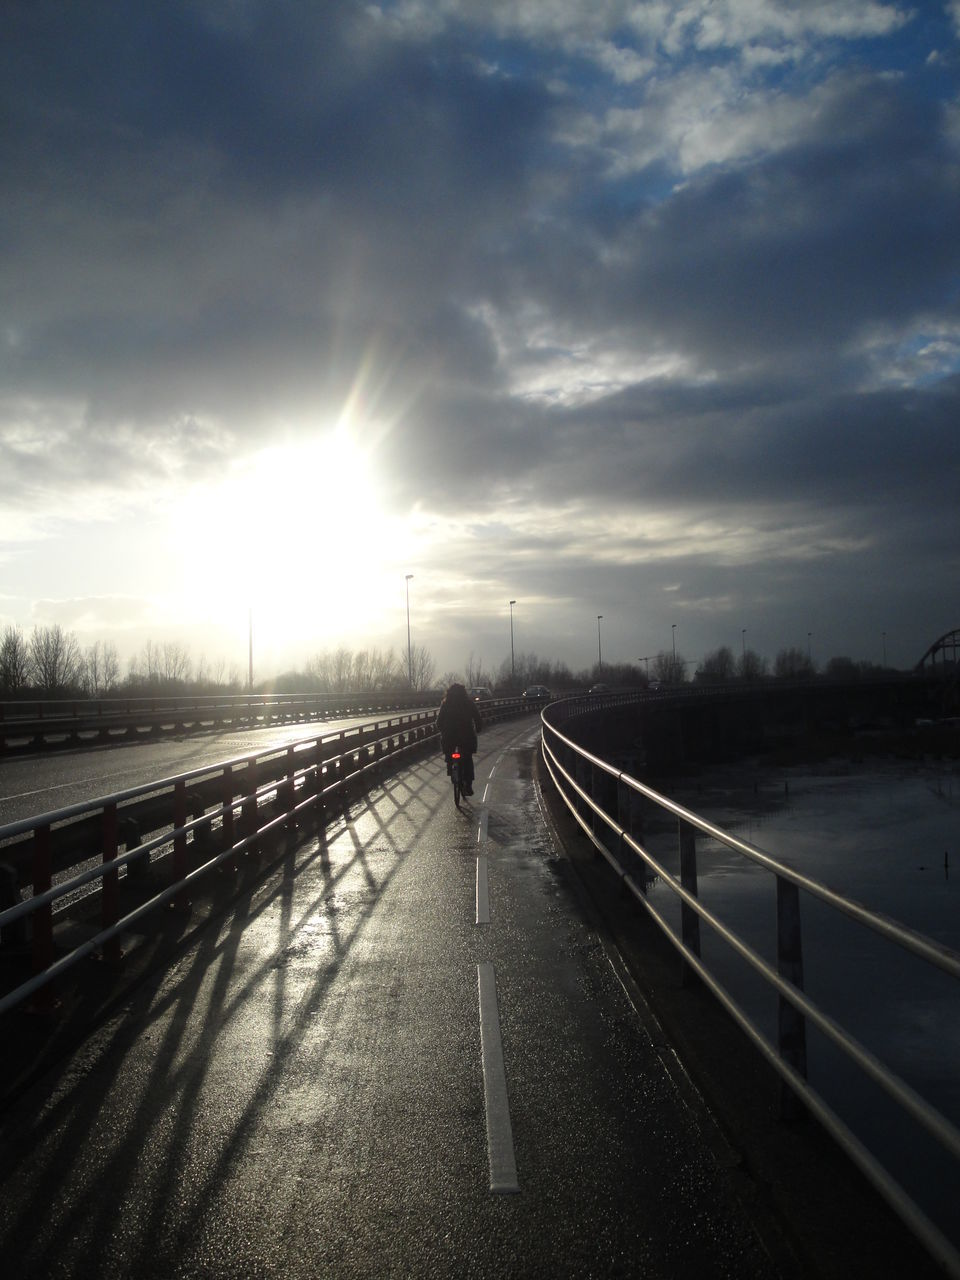 bridge - man made structure, railing, transportation, cloud - sky, sunset, sky, river, suspension bridge, connection, full length, city, one person, architecture, outdoors, built structure, the way forward, motion, road, travel destinations, women, water, nature, day, people